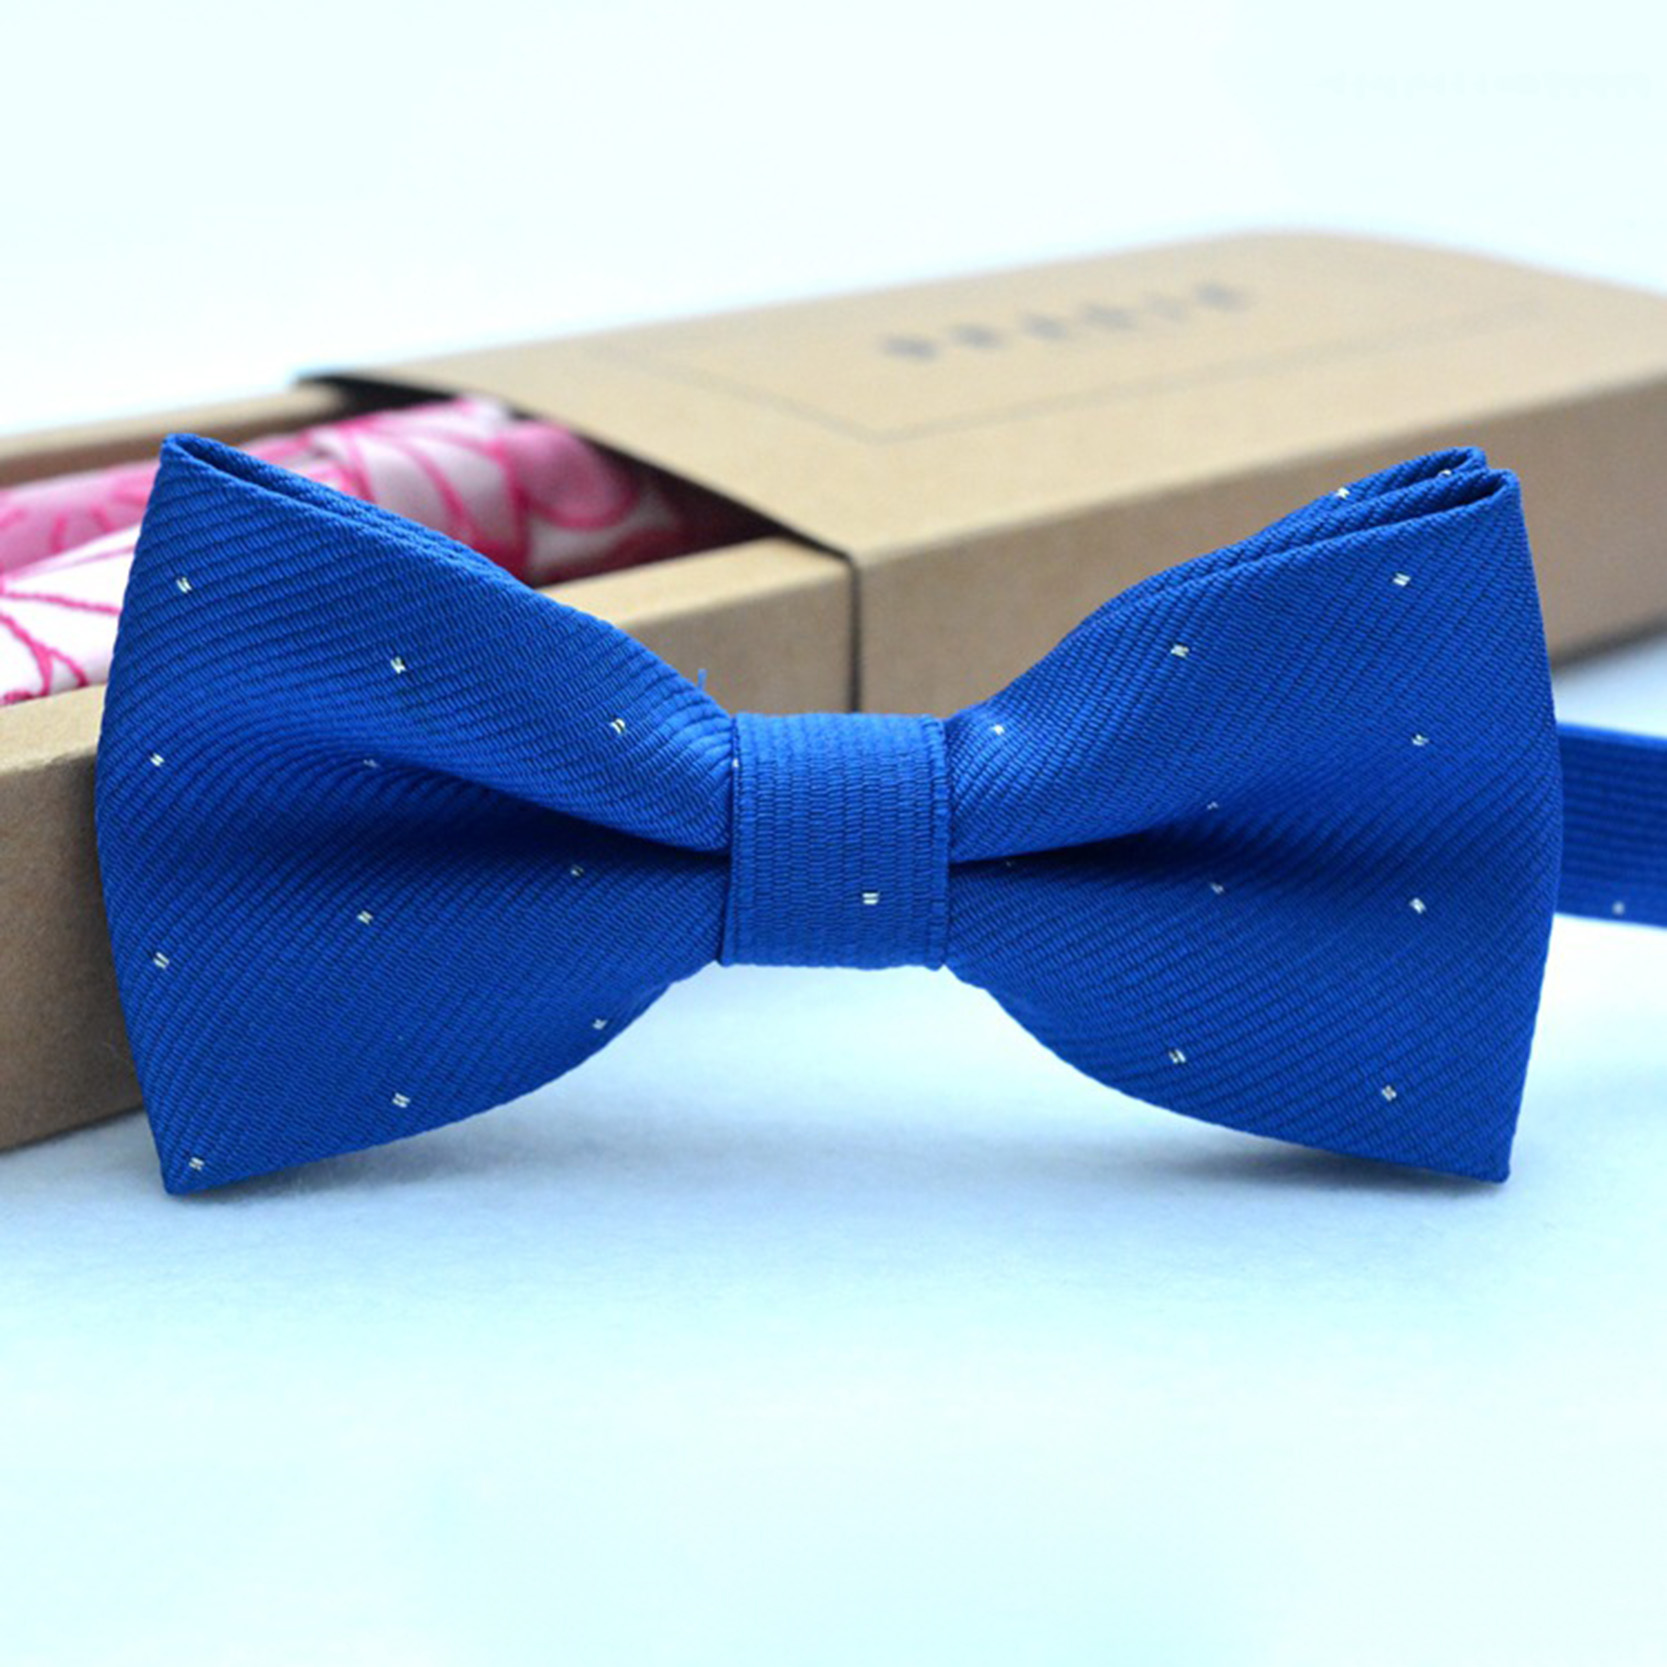 Boy's Tie Brand New Red Blue Fashion Popular Butterfly Gravata Party Bowtie Wedding Bow Tie For Men Dot Plaid Pattern Bowknot Boy's Accessories